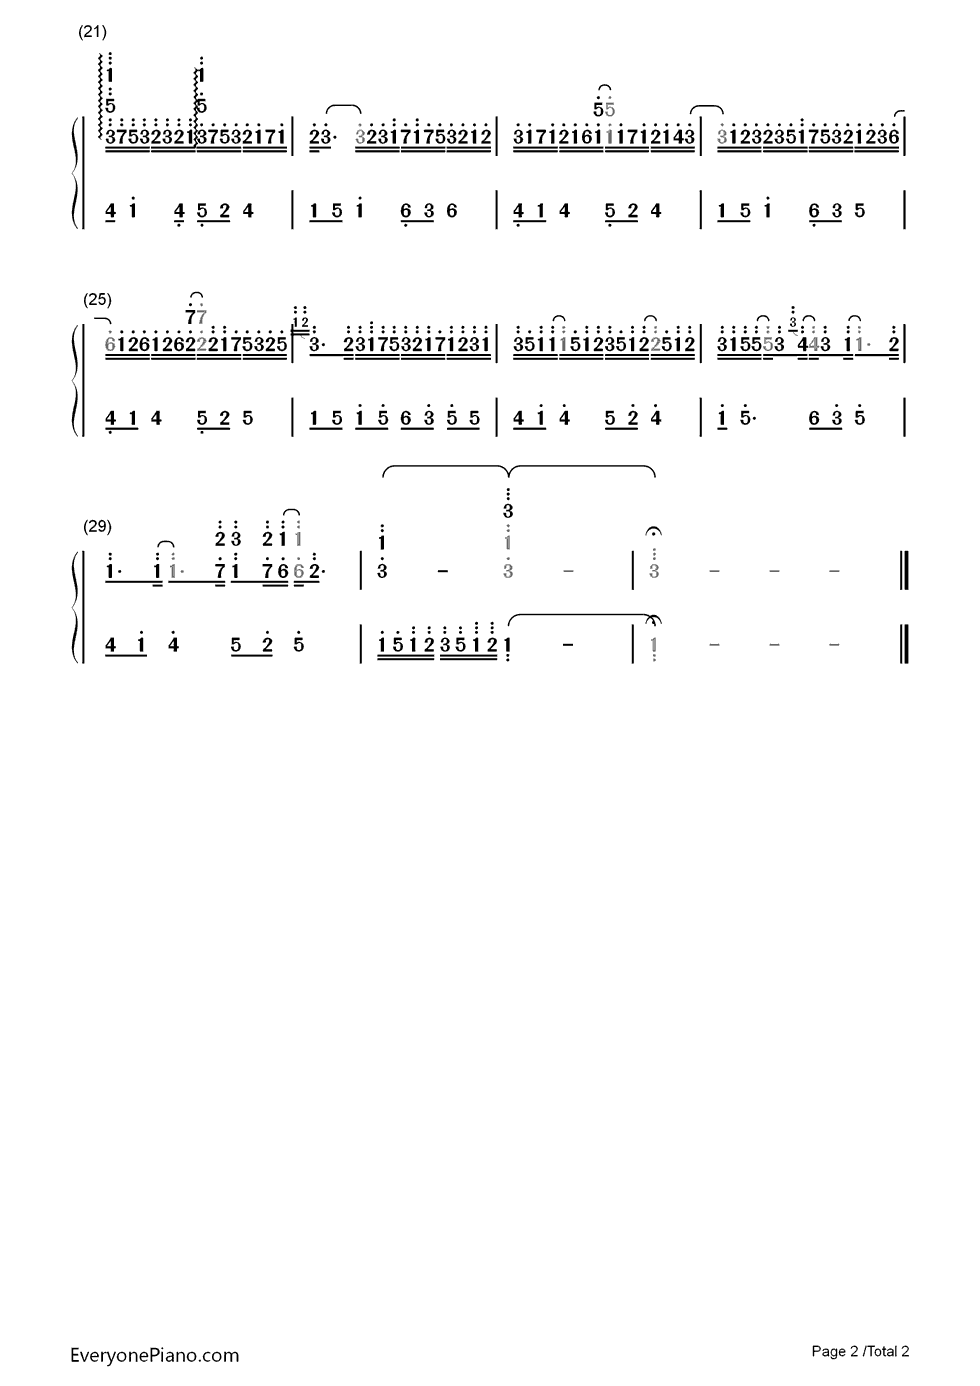 Our song taylor swift numbered musical notation preview 2 free listen now print sheet our song taylor swift numbered musical notation preview 2 hexwebz Choice Image